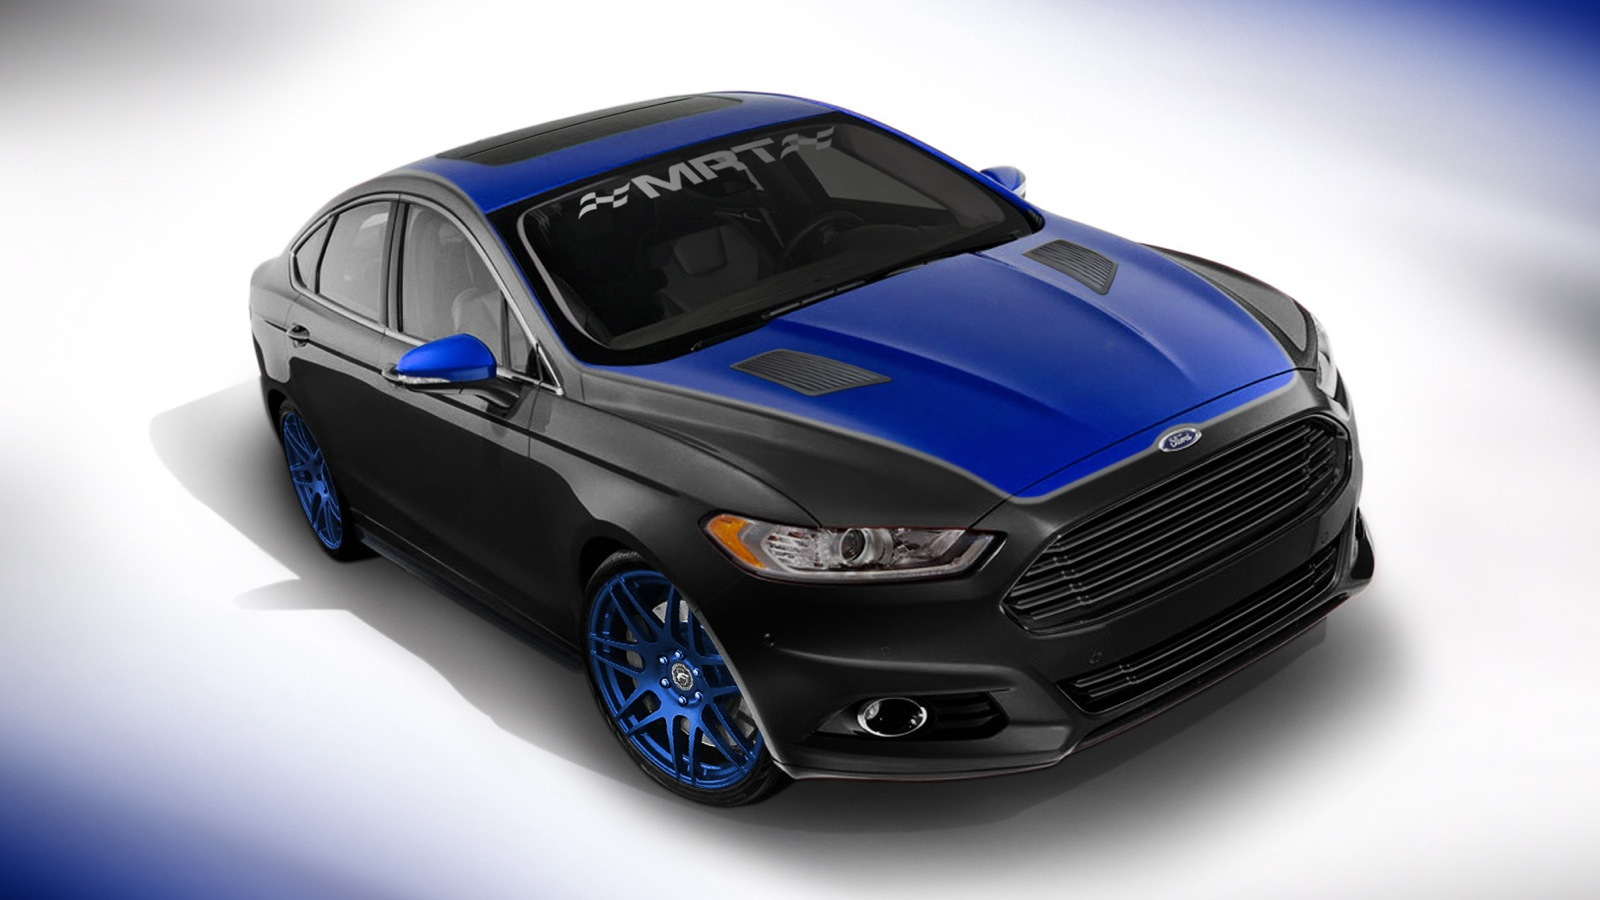 2013 Ford Fusion, built by MRT Performance for SEMA 2012